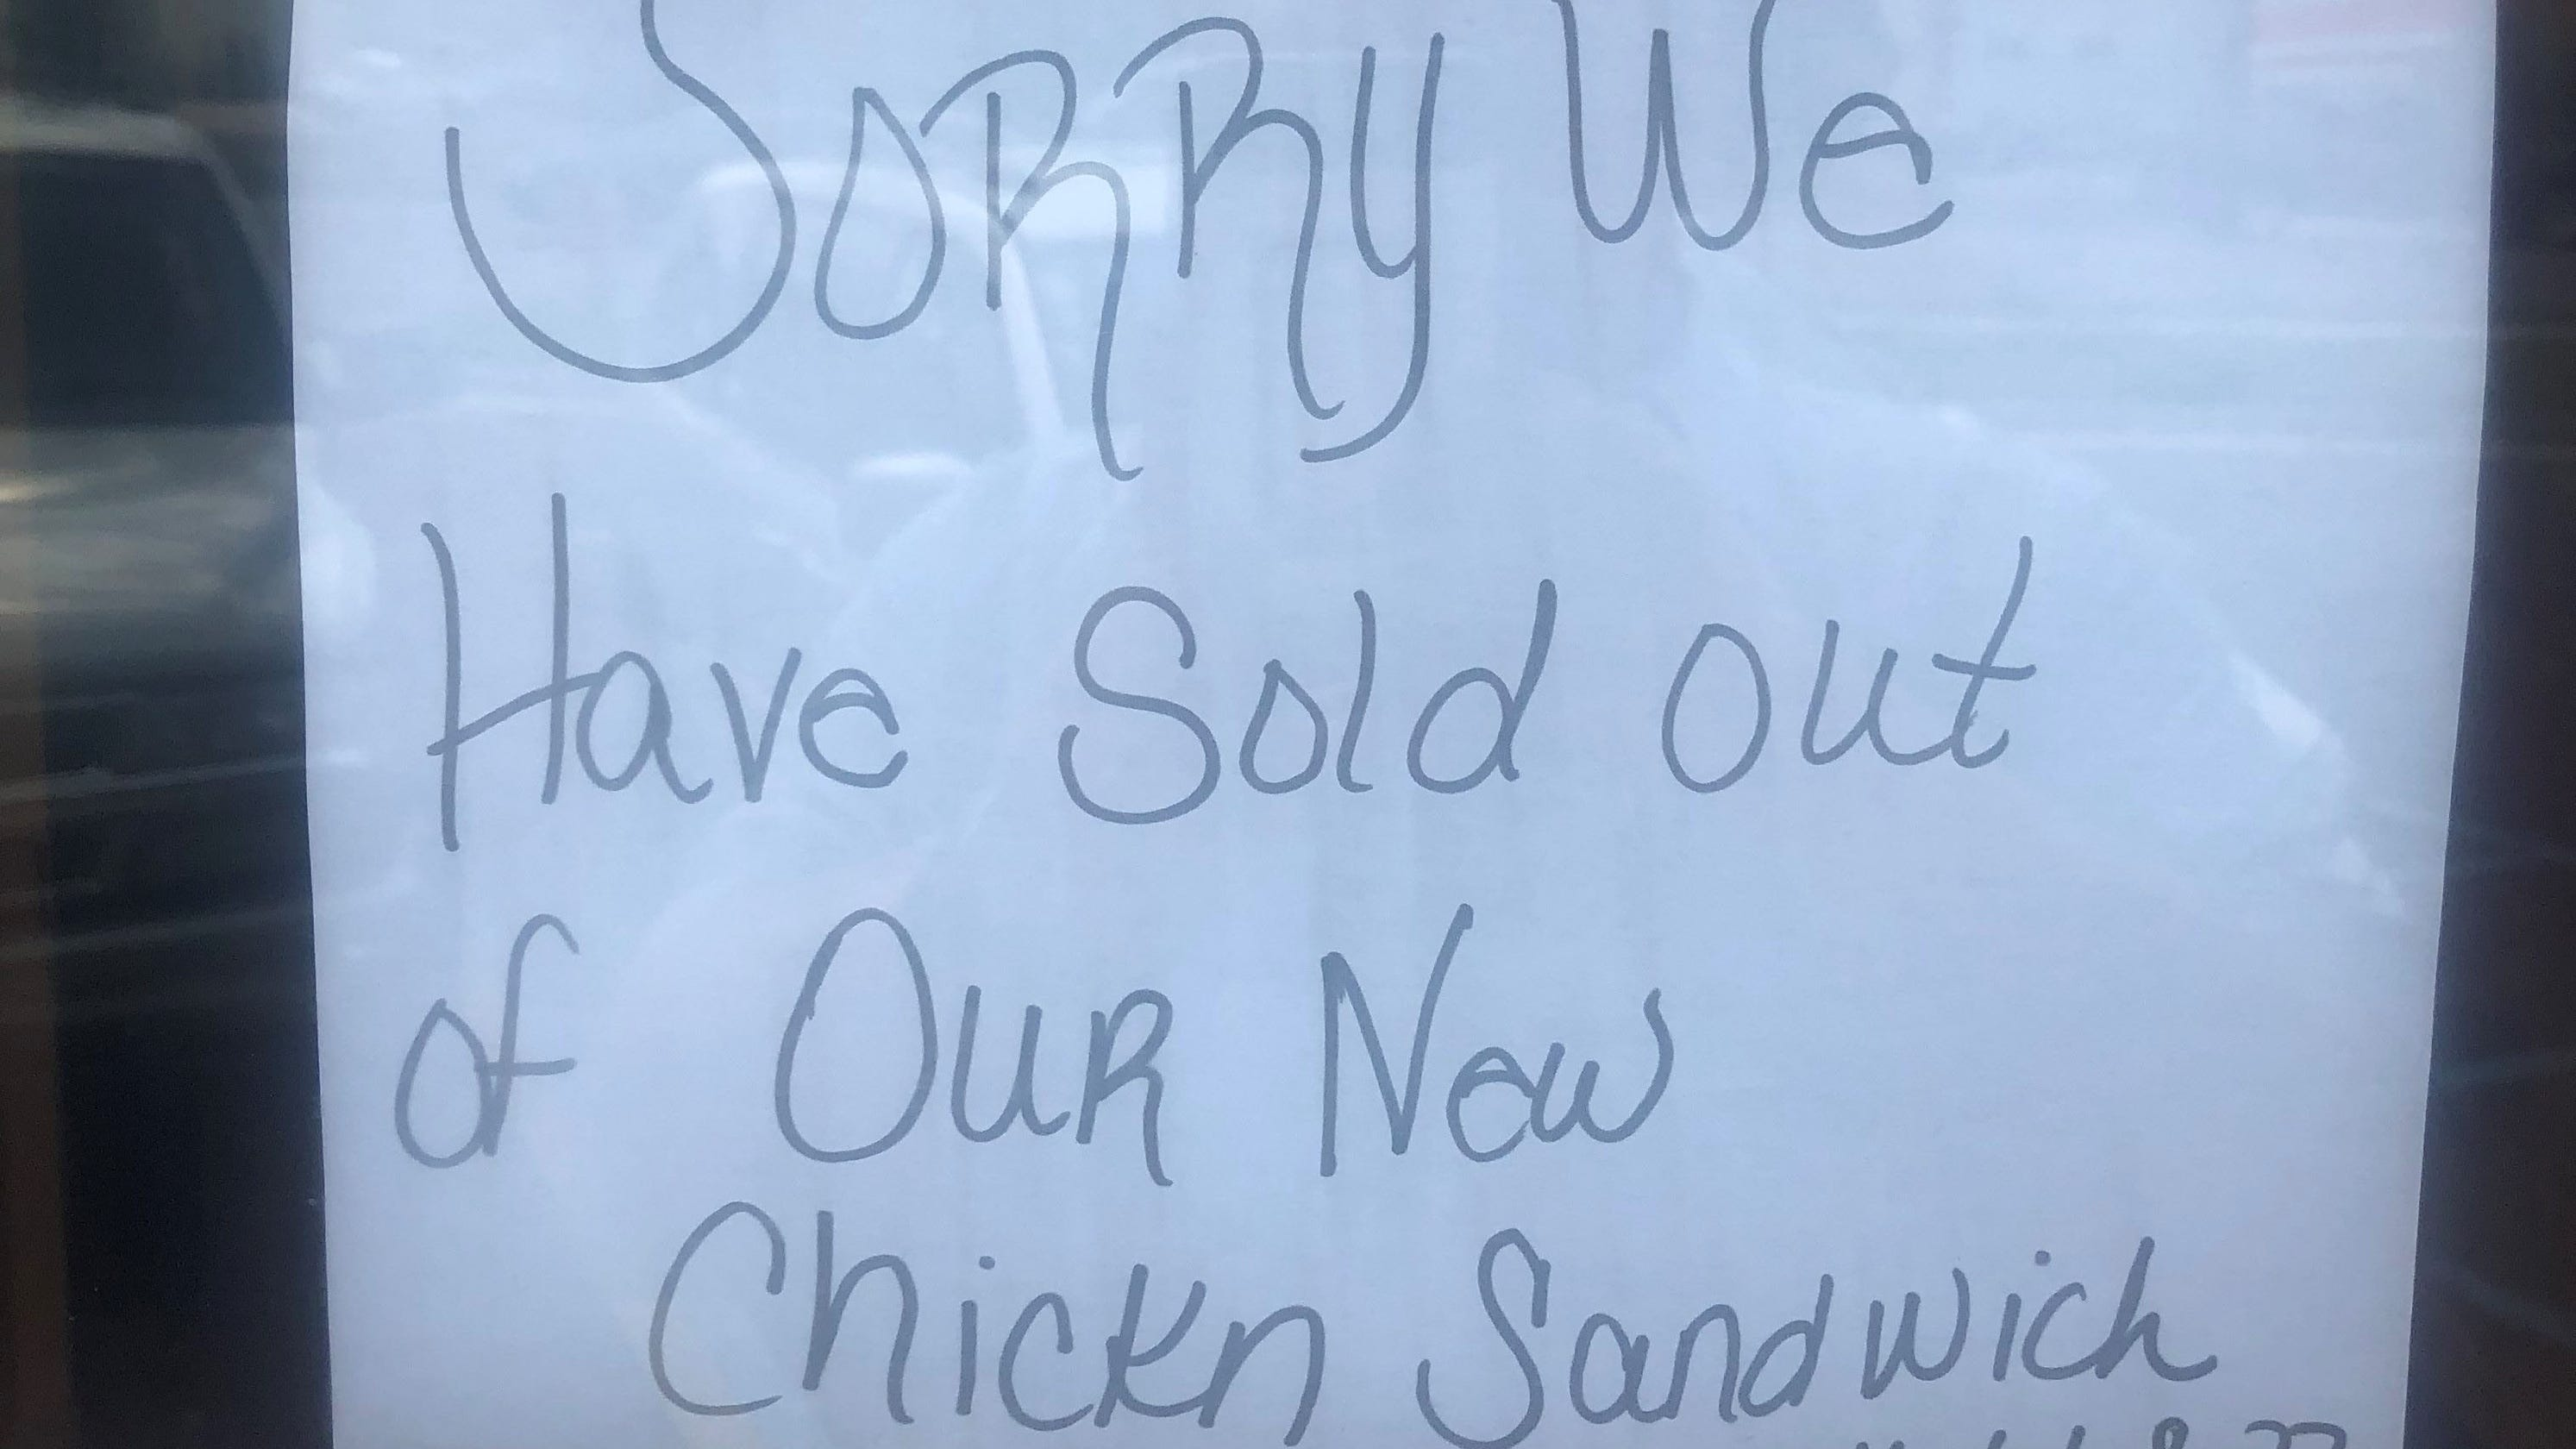 Popeyes New Chicken Sandwich Is Sold Out In Lansing Too